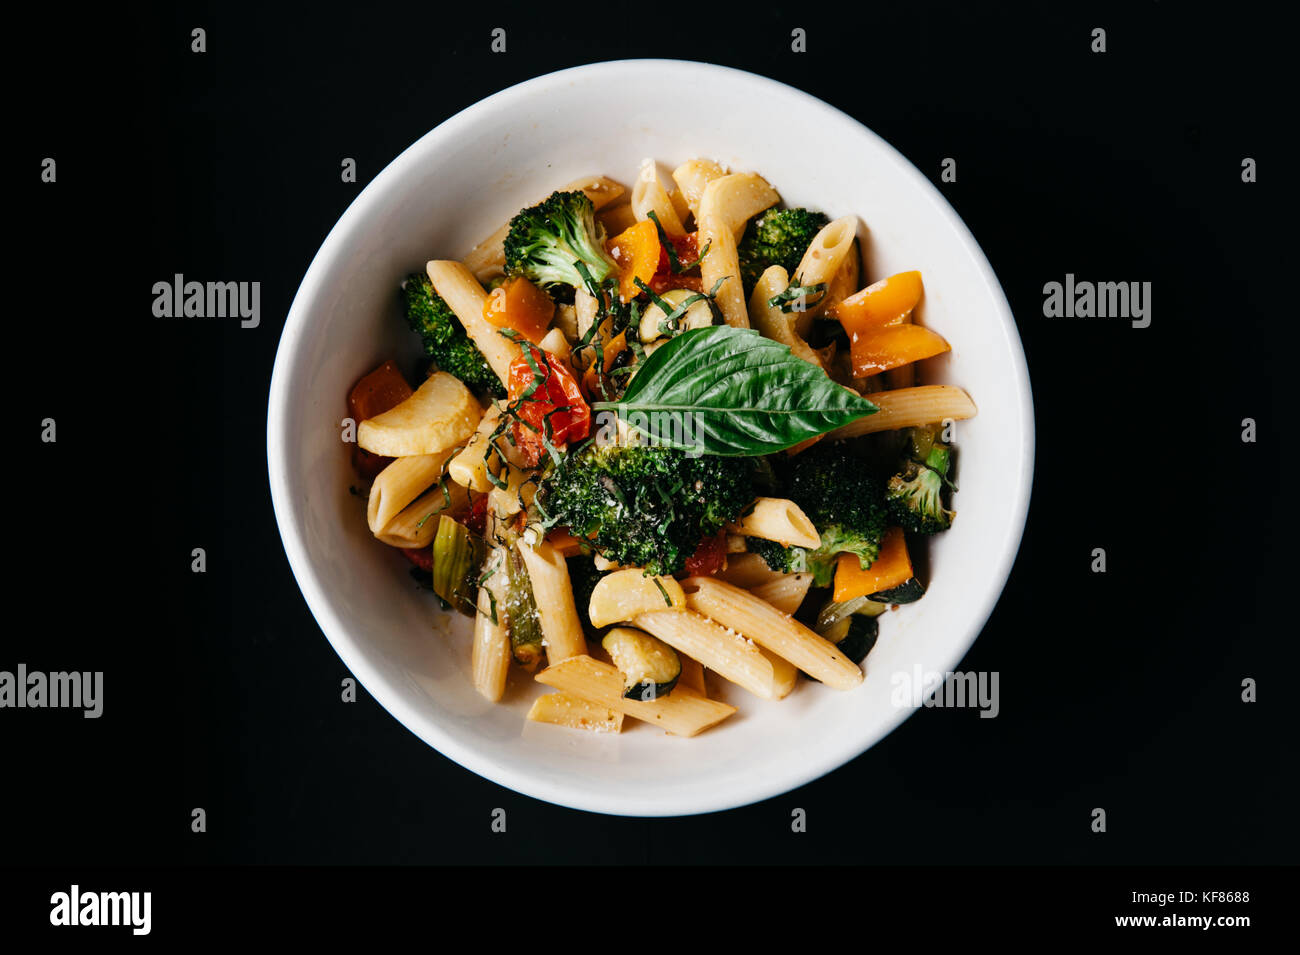 A plate of penne with fresh tomatoes, basil, broccoli with olive oil and parmesan cheese - Stock Image